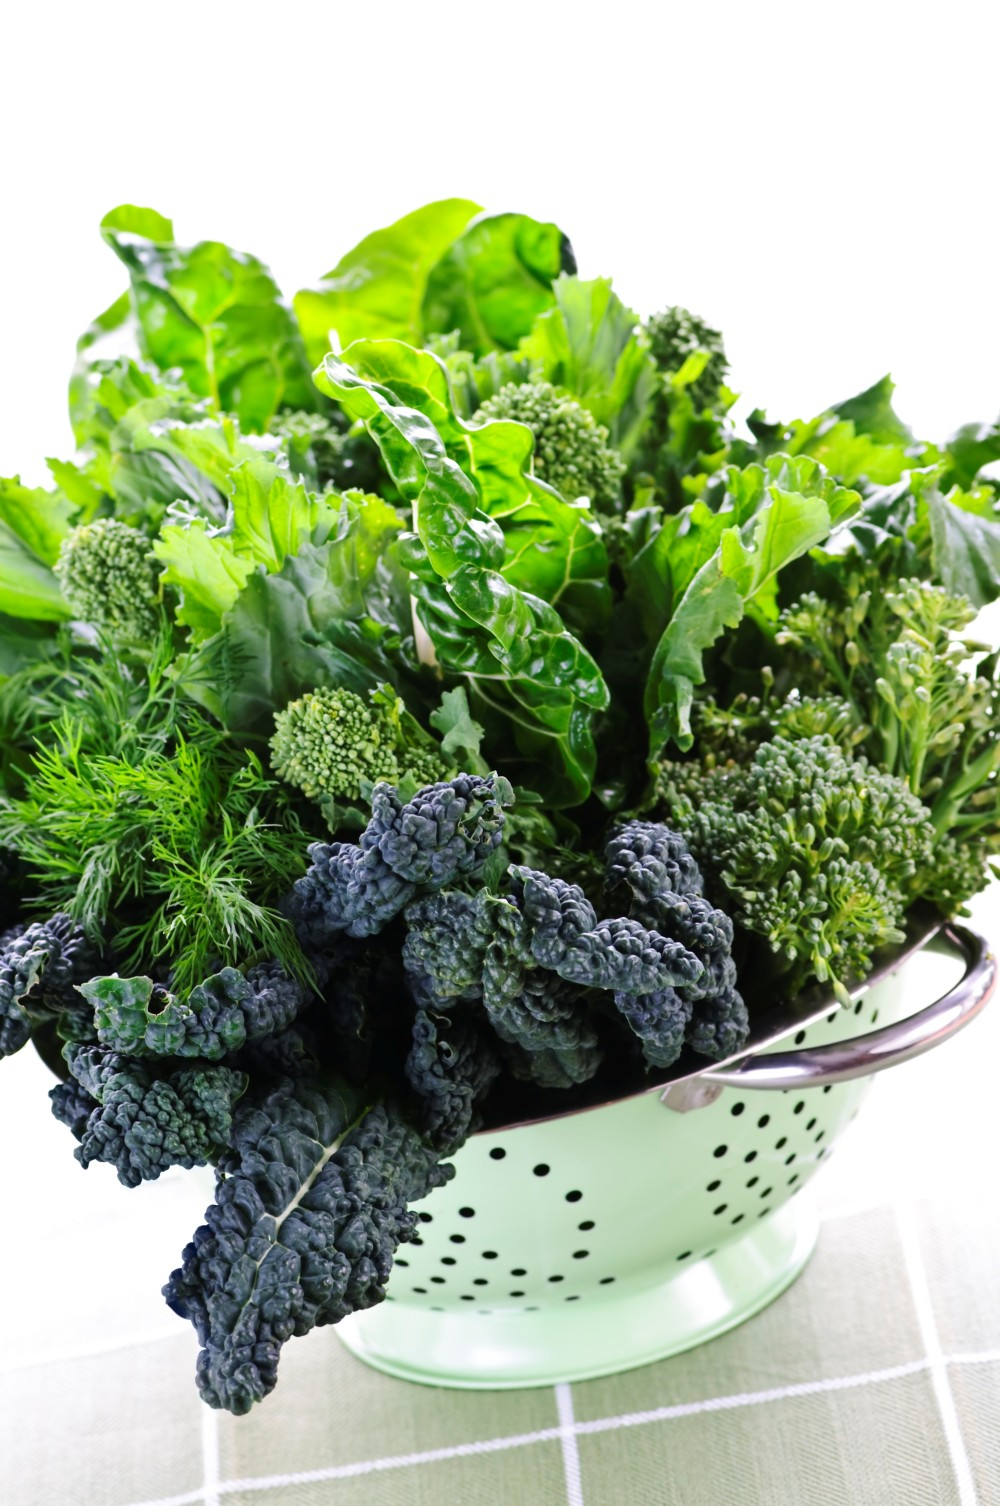 The truth about kale